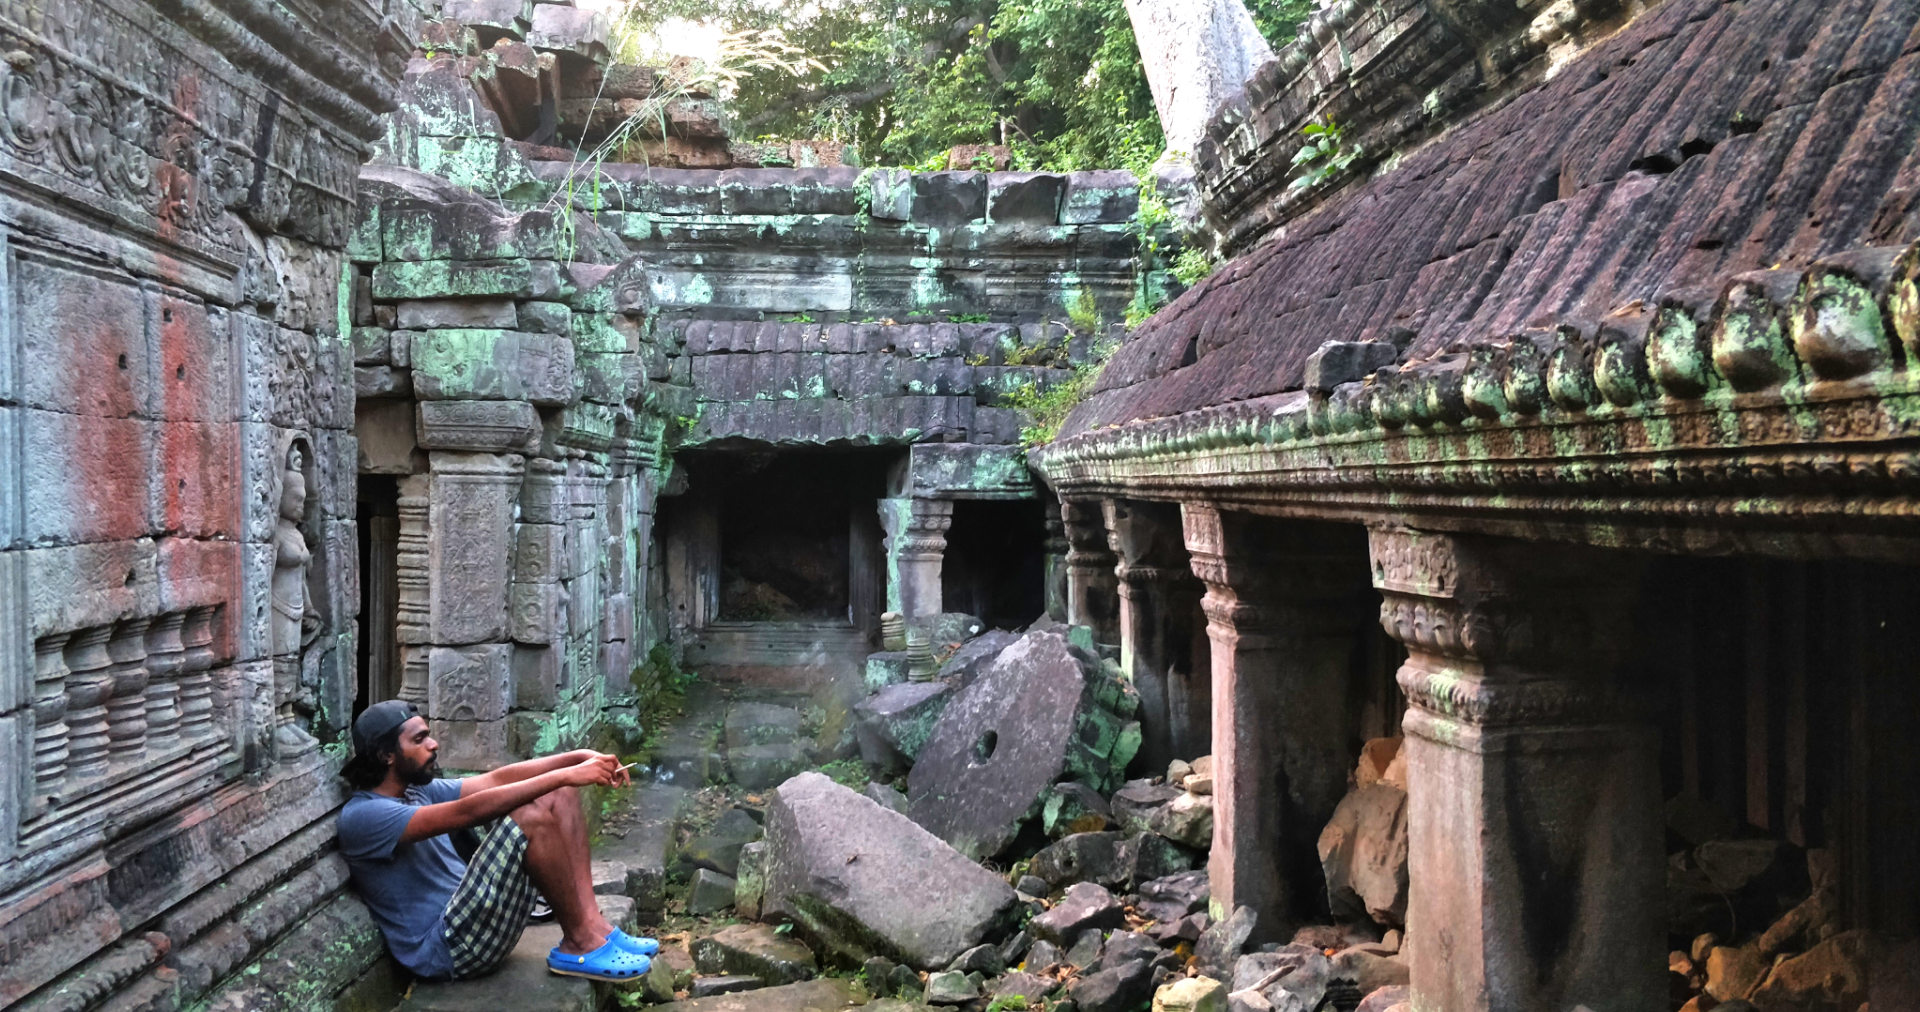 Lost in the temples of Angkor Cambodia